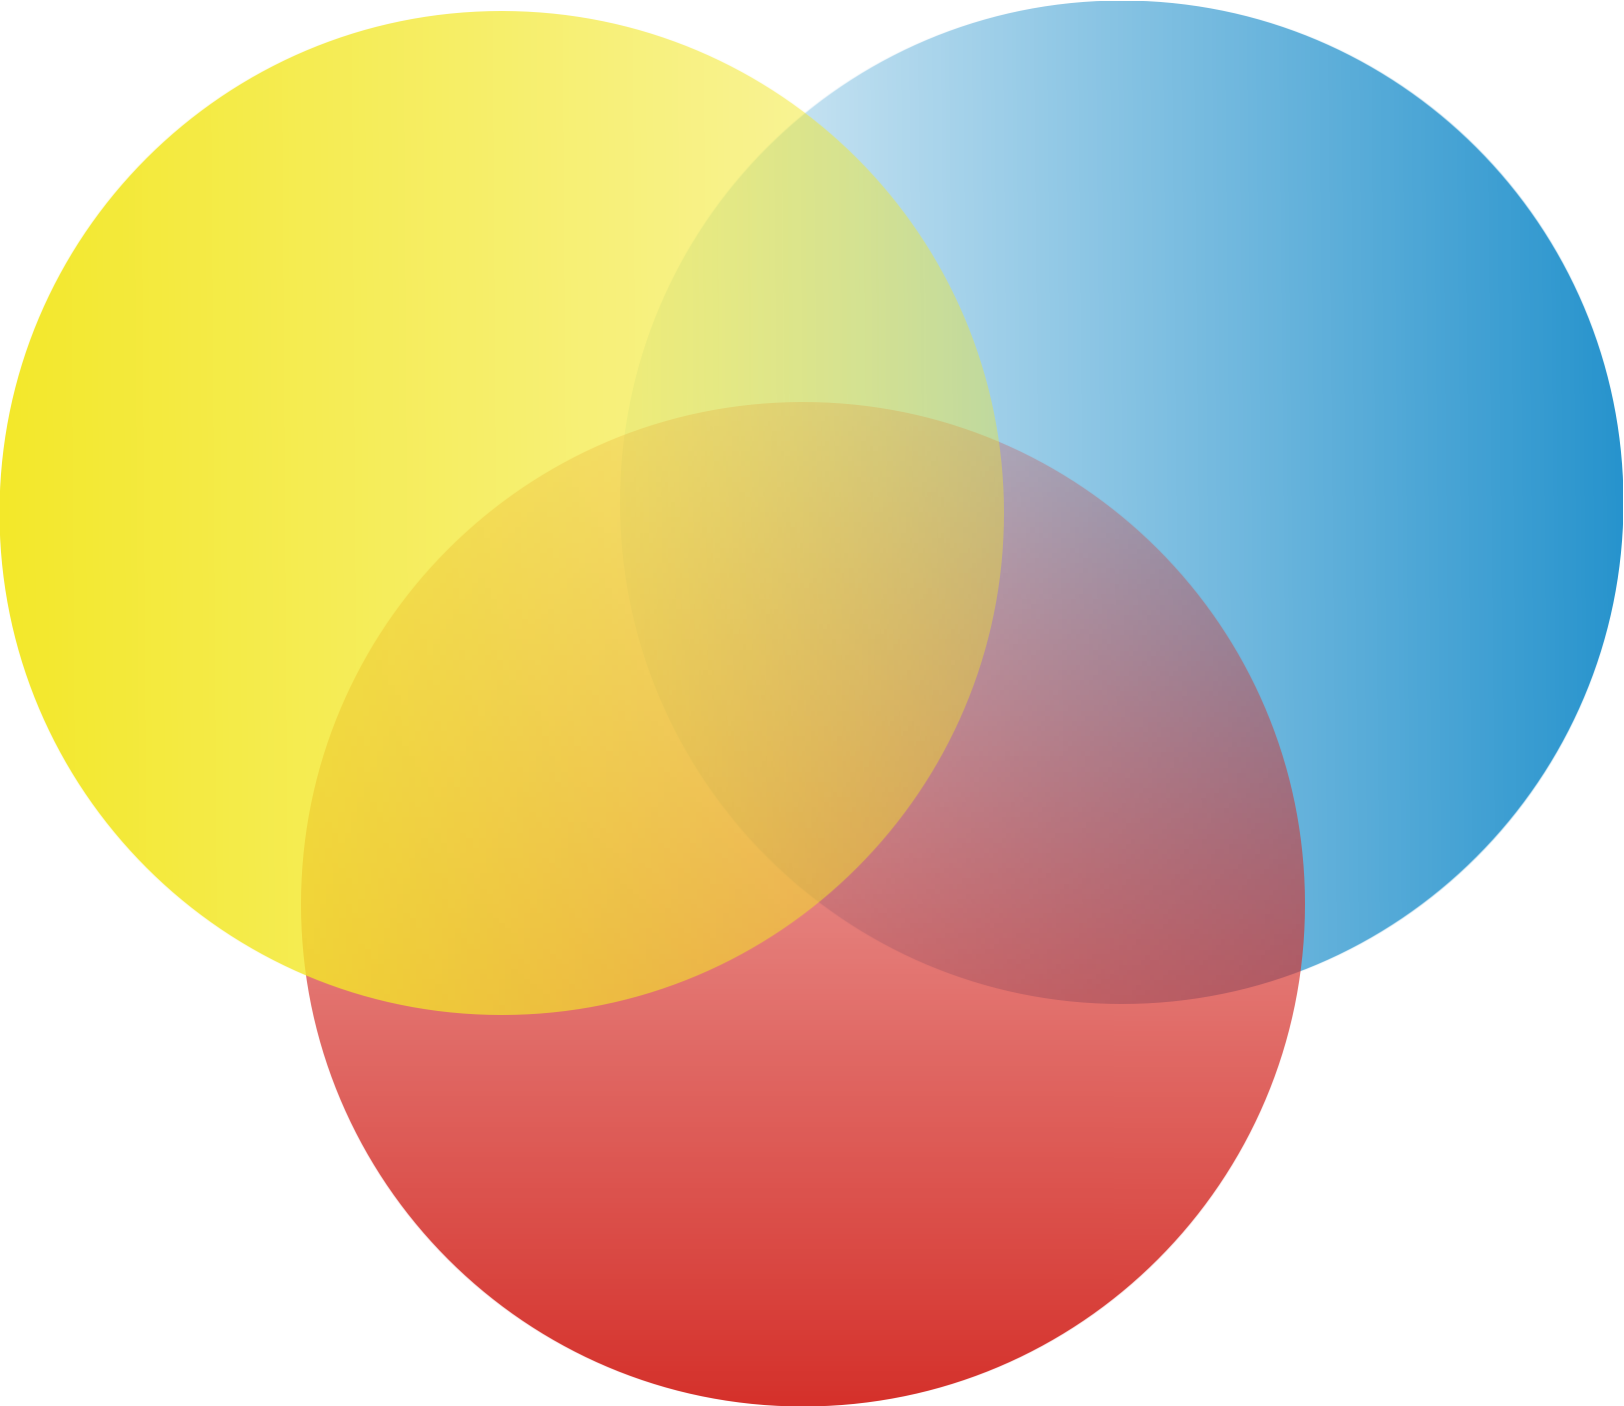 Circle png images. File diagram wikimedia commons